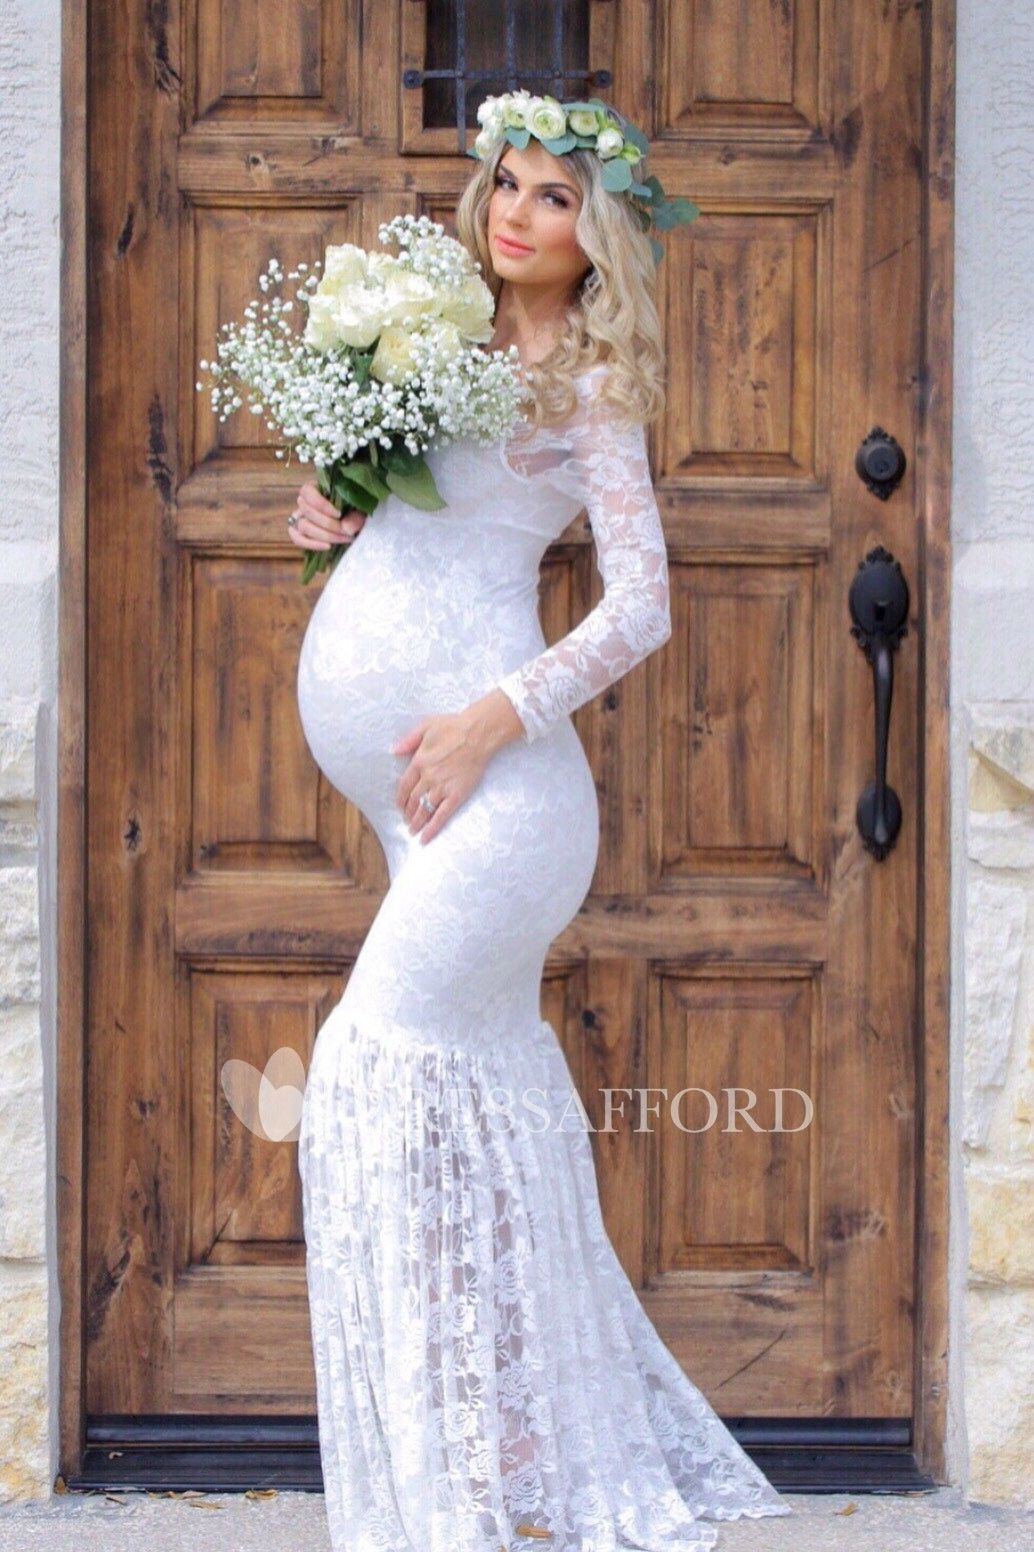 Mermaid Scoop Pleated Long Sleeve Floor Length Lace Maternity Wedding Dress Lace Maternity Wedding Dresses Wedding Dresses Pregnant Brides Pregnant Wedding Dress